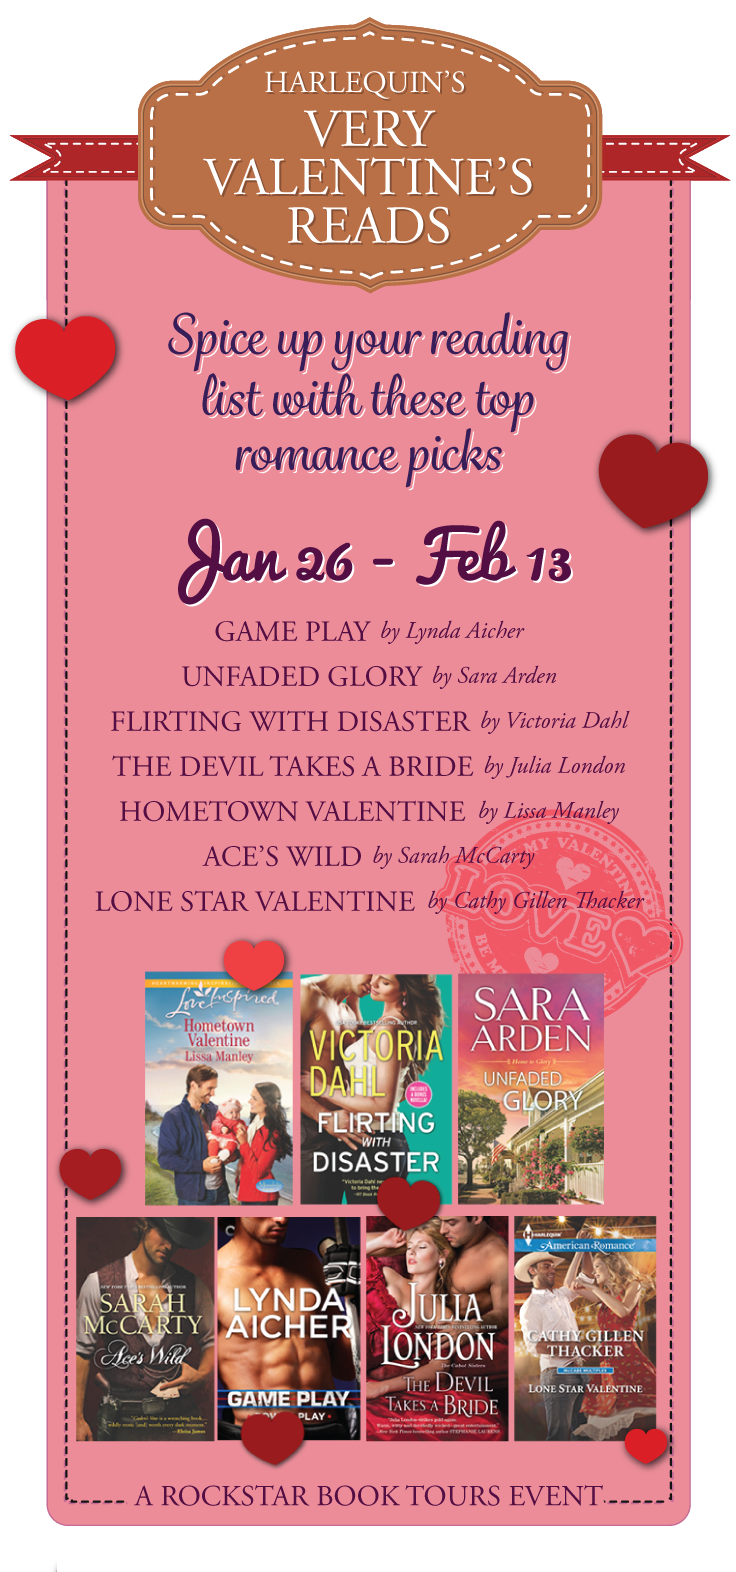 Harlequin's Very Valentine's Reads